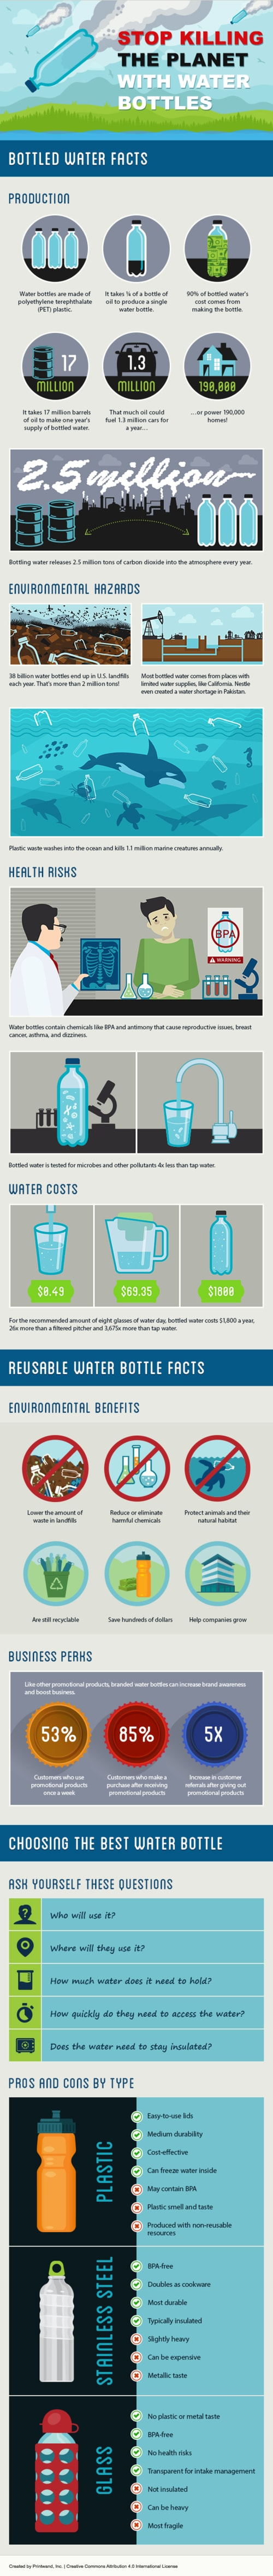 How Water Bottles Are Hurting The Environment via CF Designers